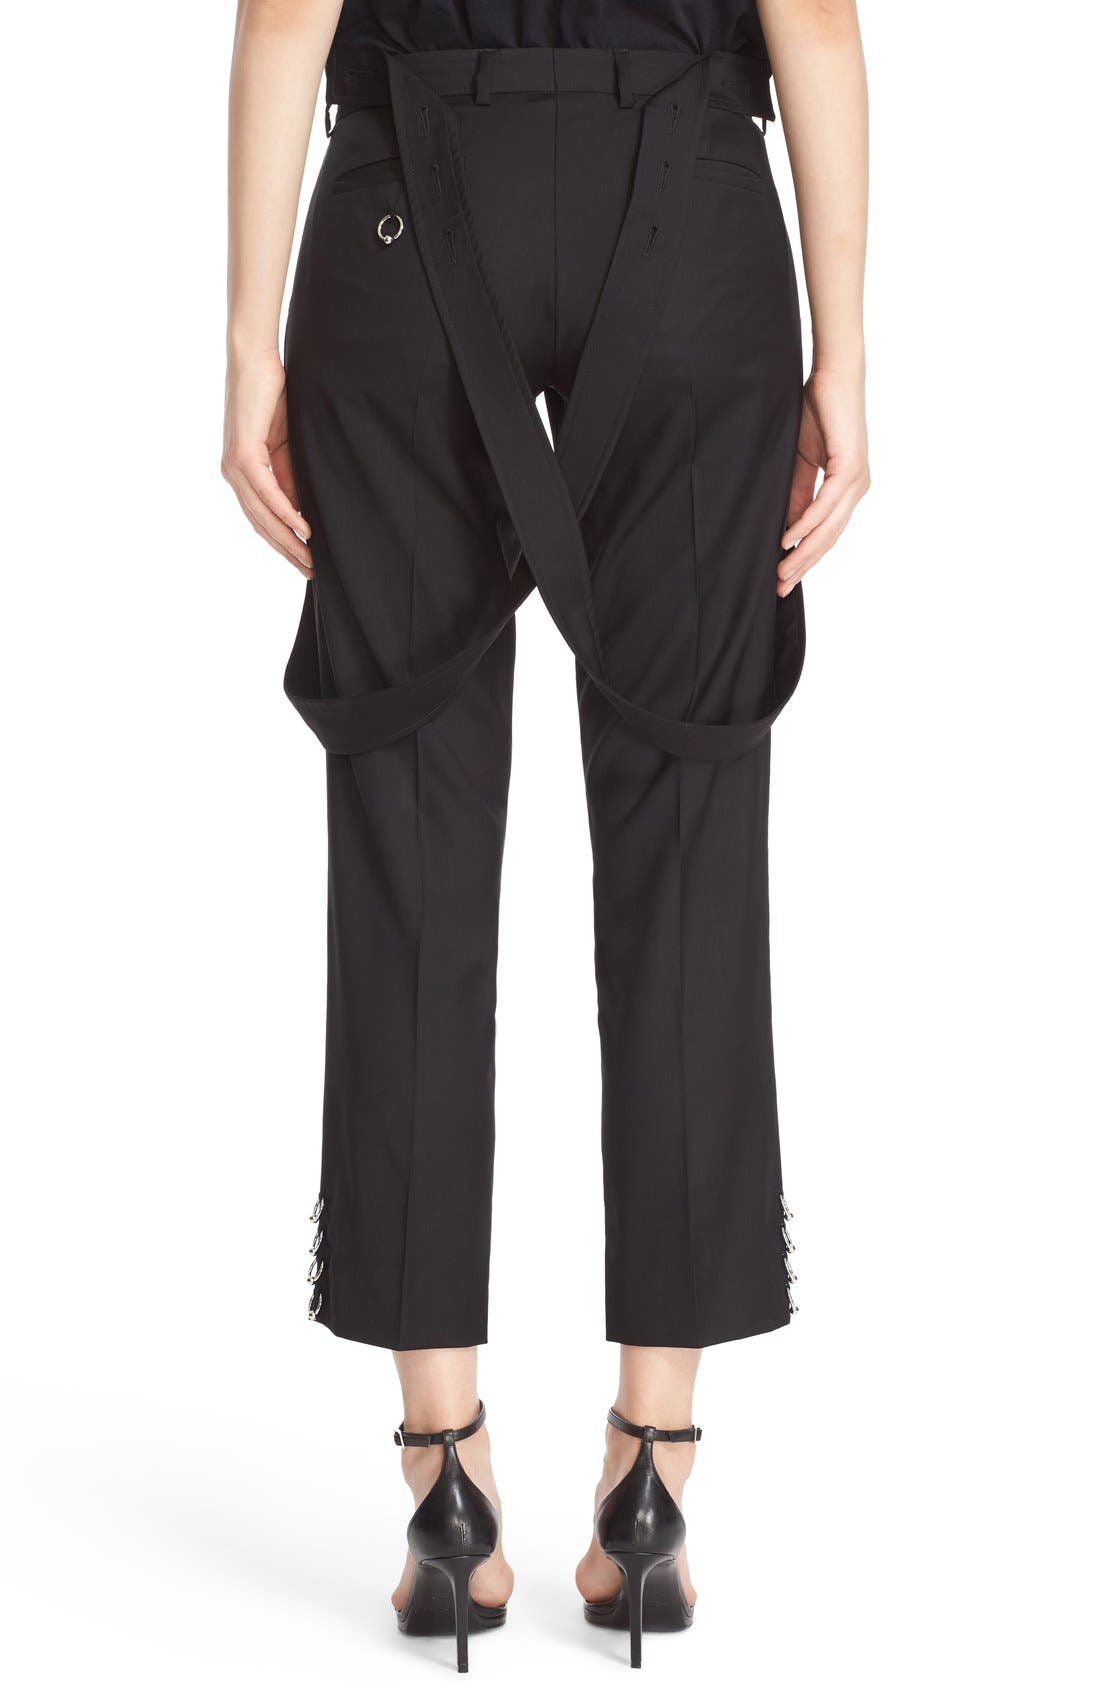 ASHLEY WILLIAMS,                             'Piercing' Wool Ankle Pants with Detachable Suspenders,                             Alternate thumbnail 6, color,                             001